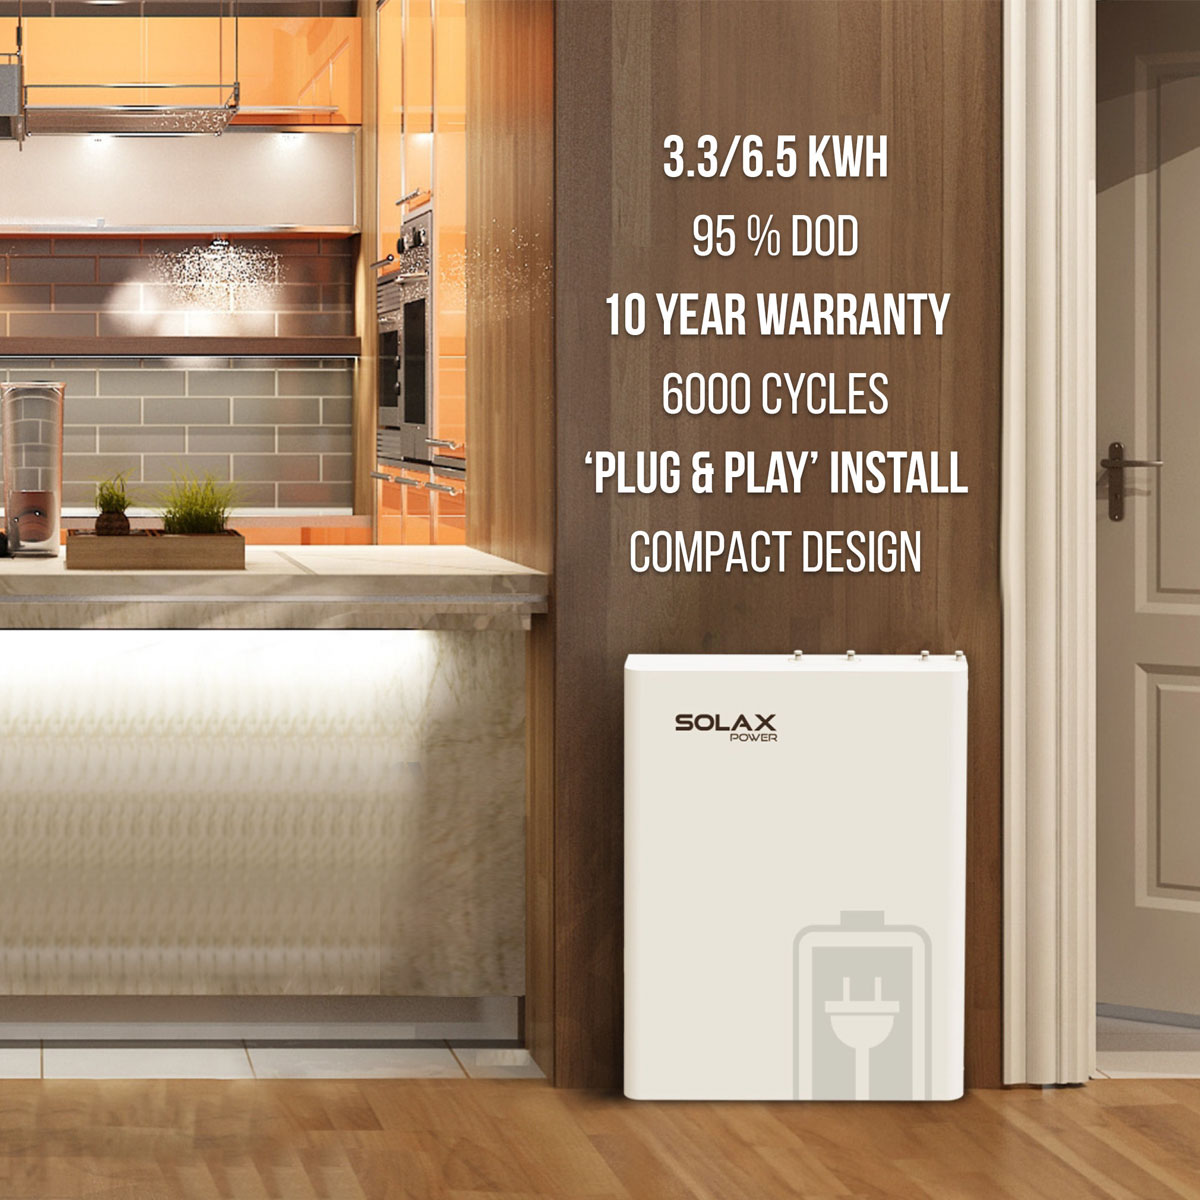 SolaX LG Battery Storage 3 3kwh - Forever Green Products